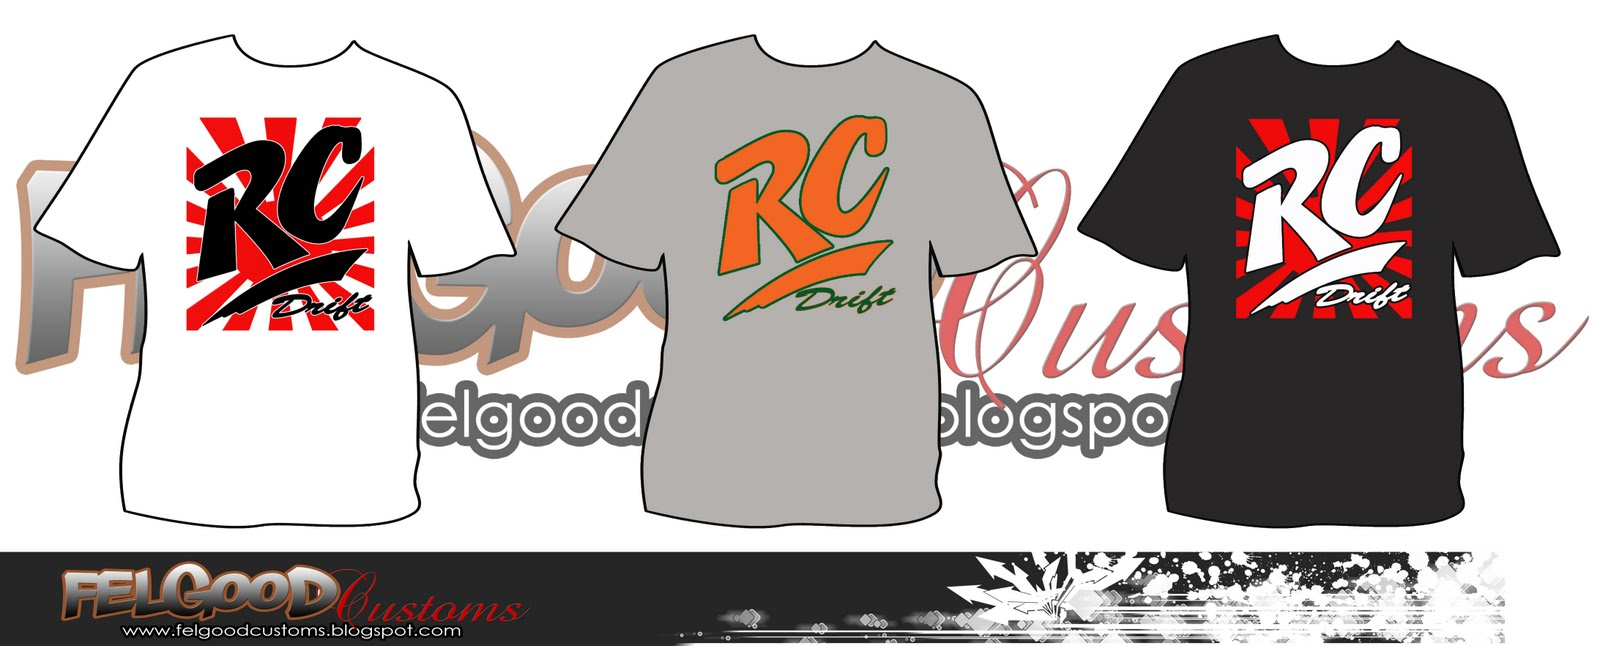 Drafting up some RC Drift shirts for production. I've been thinking